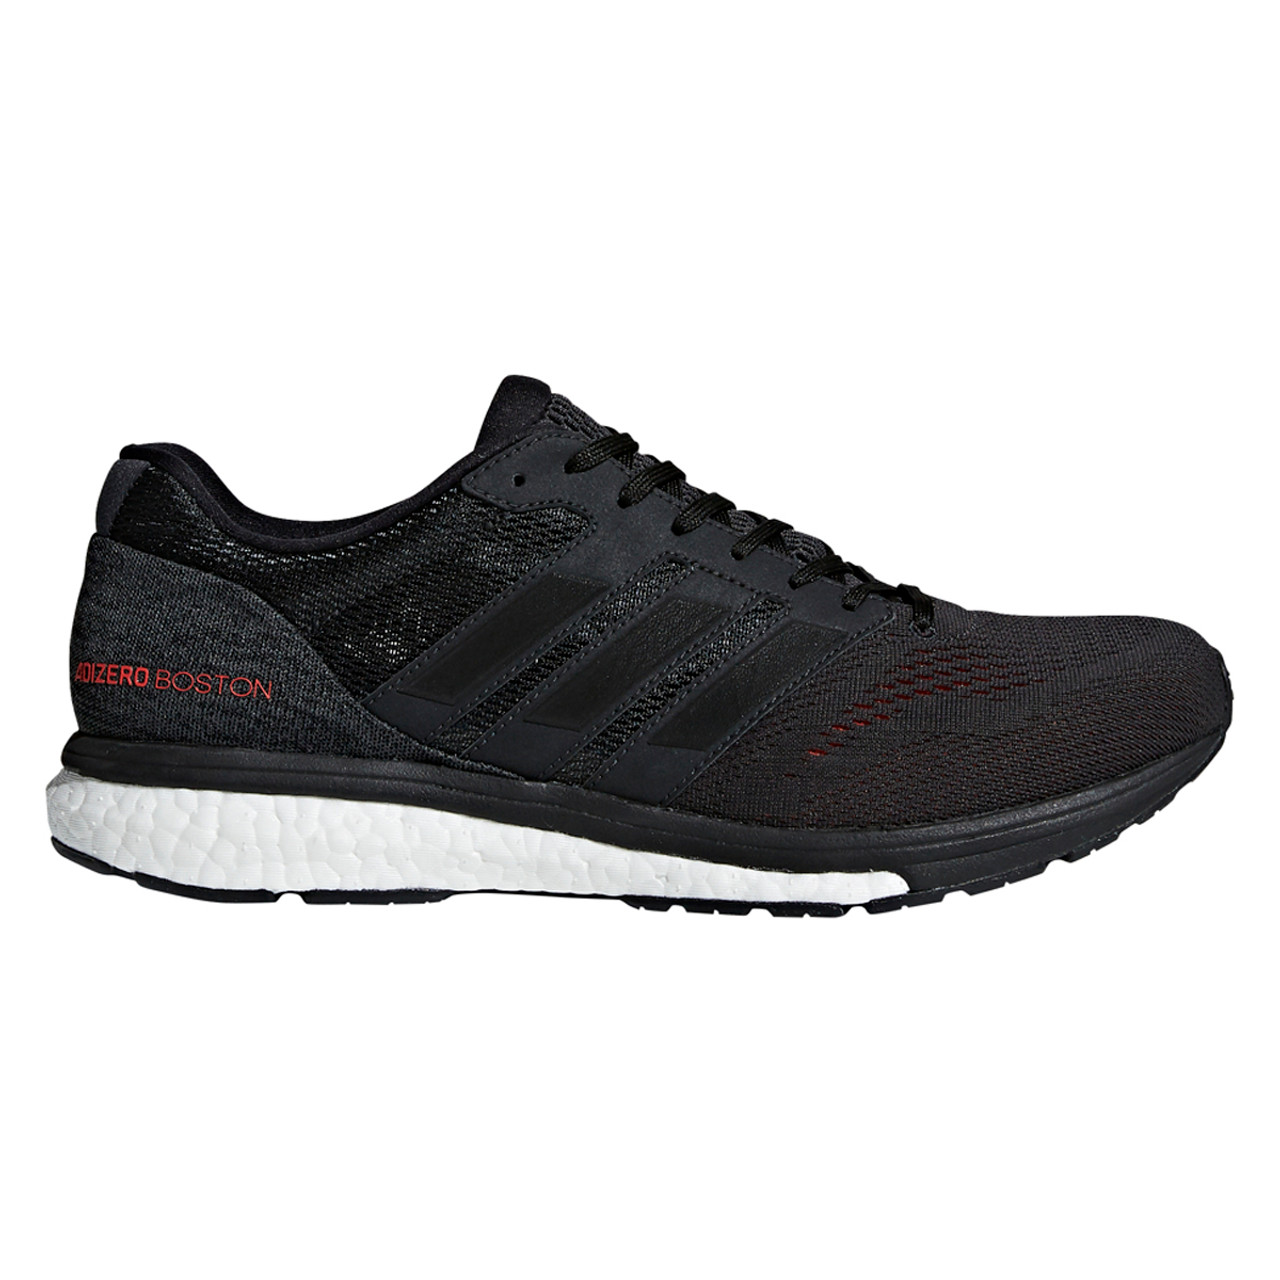 the best attitude b53dd 48d5a Adidas AdiZero Boston 7 Mens Sneakers BB6538 ...